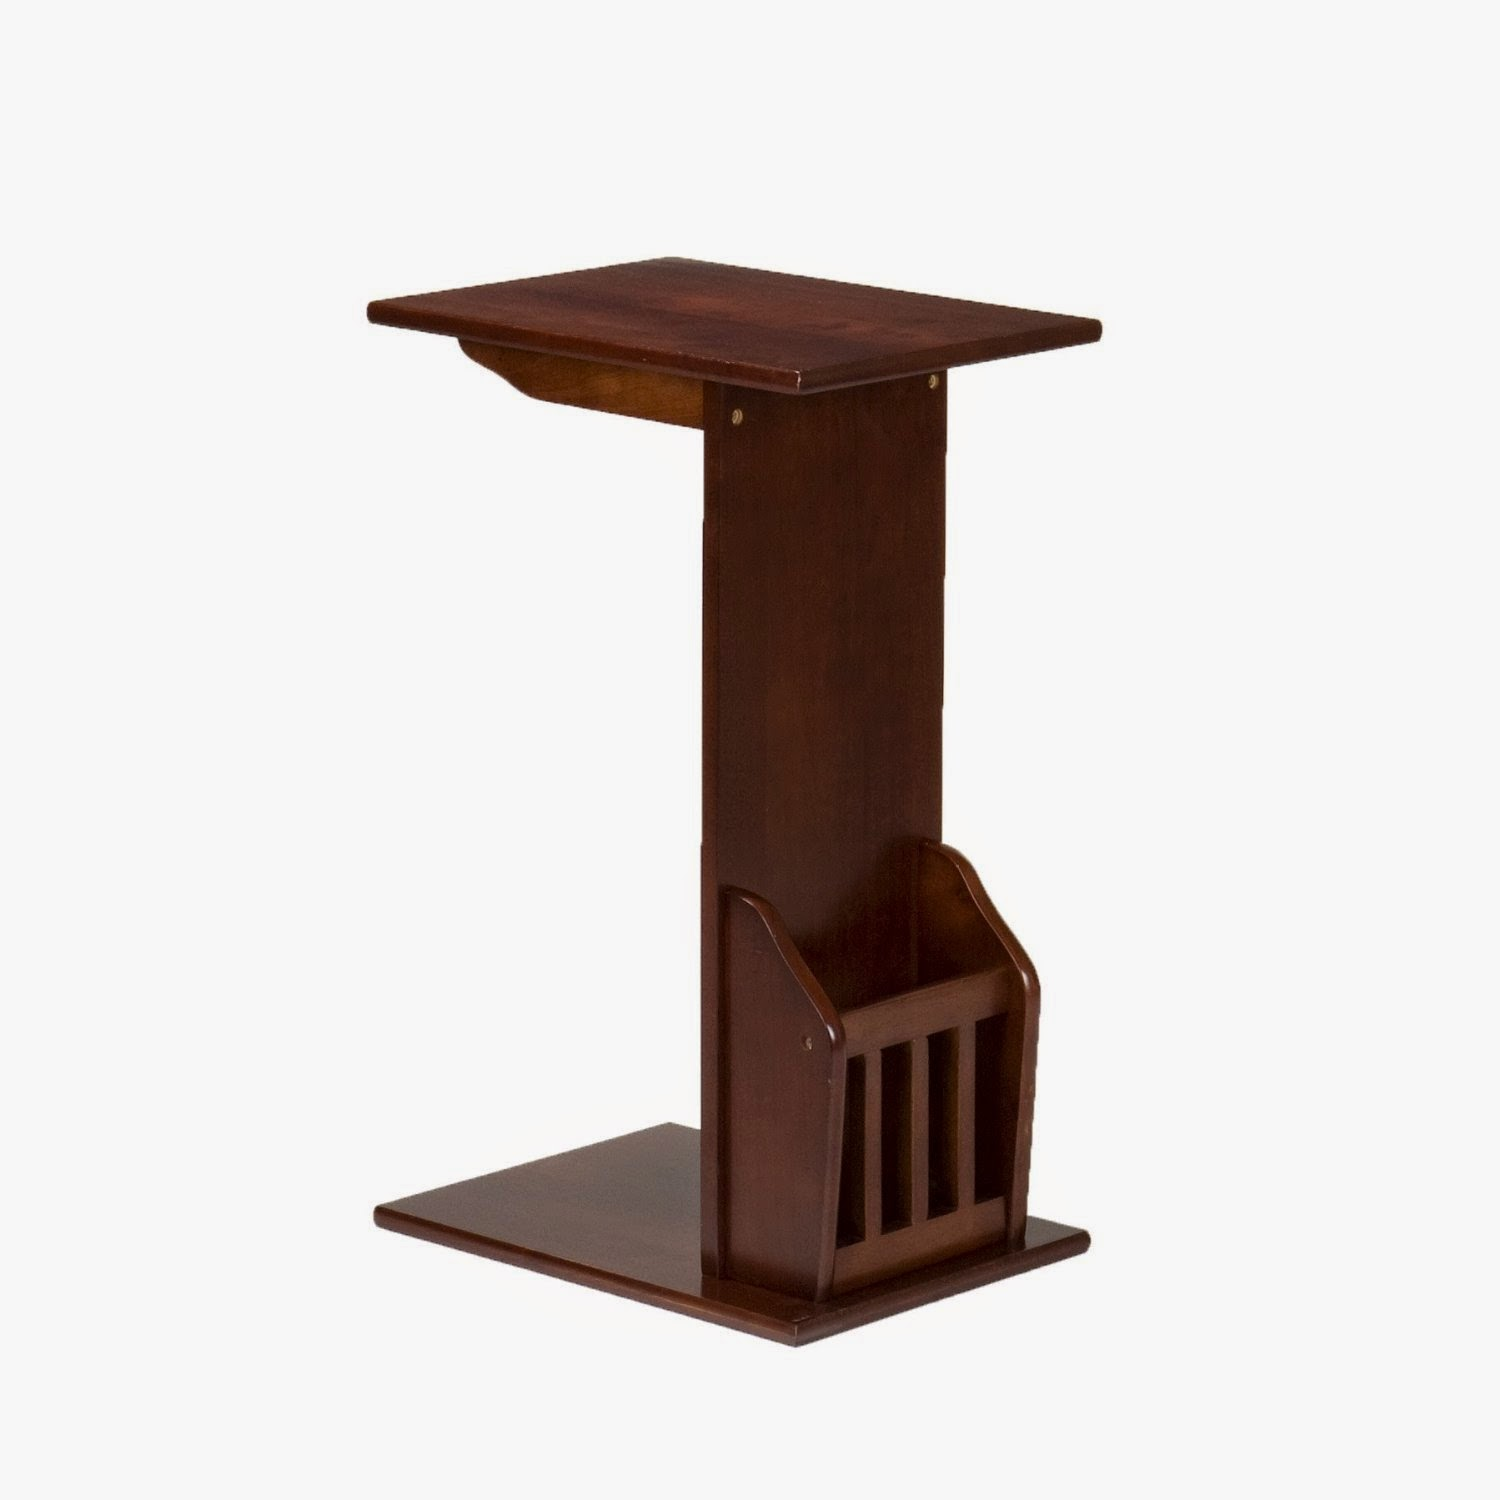 small sofa end tables design pictures india brown colour side table square shape and